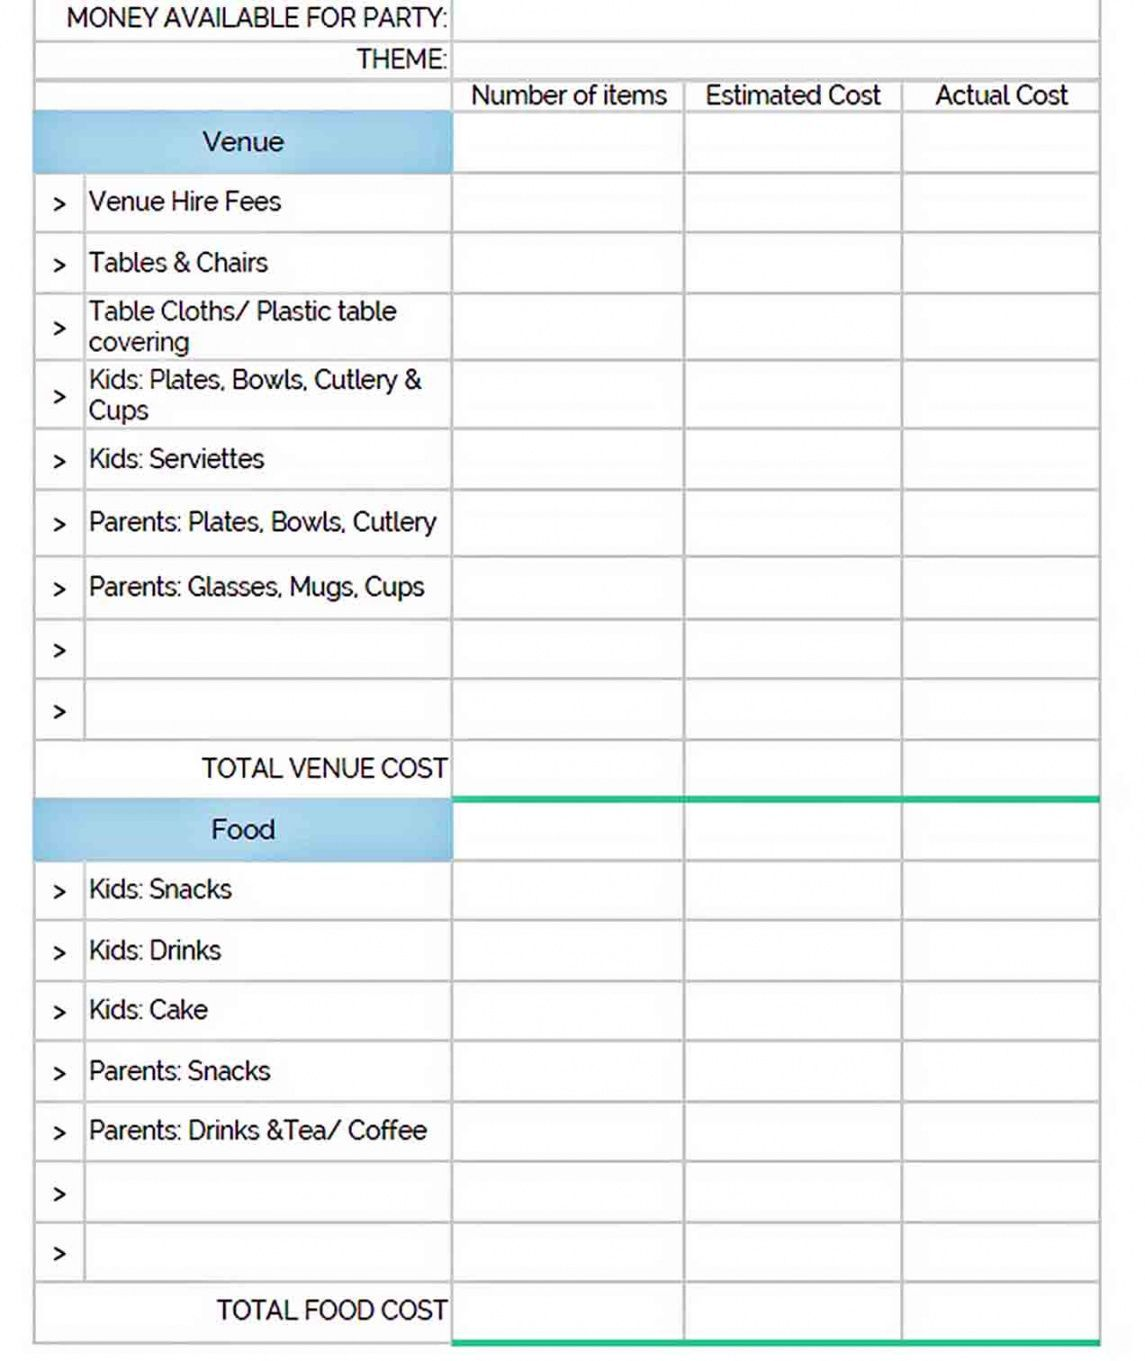 Get Our Image Of Bachelorette Party Budget Template For